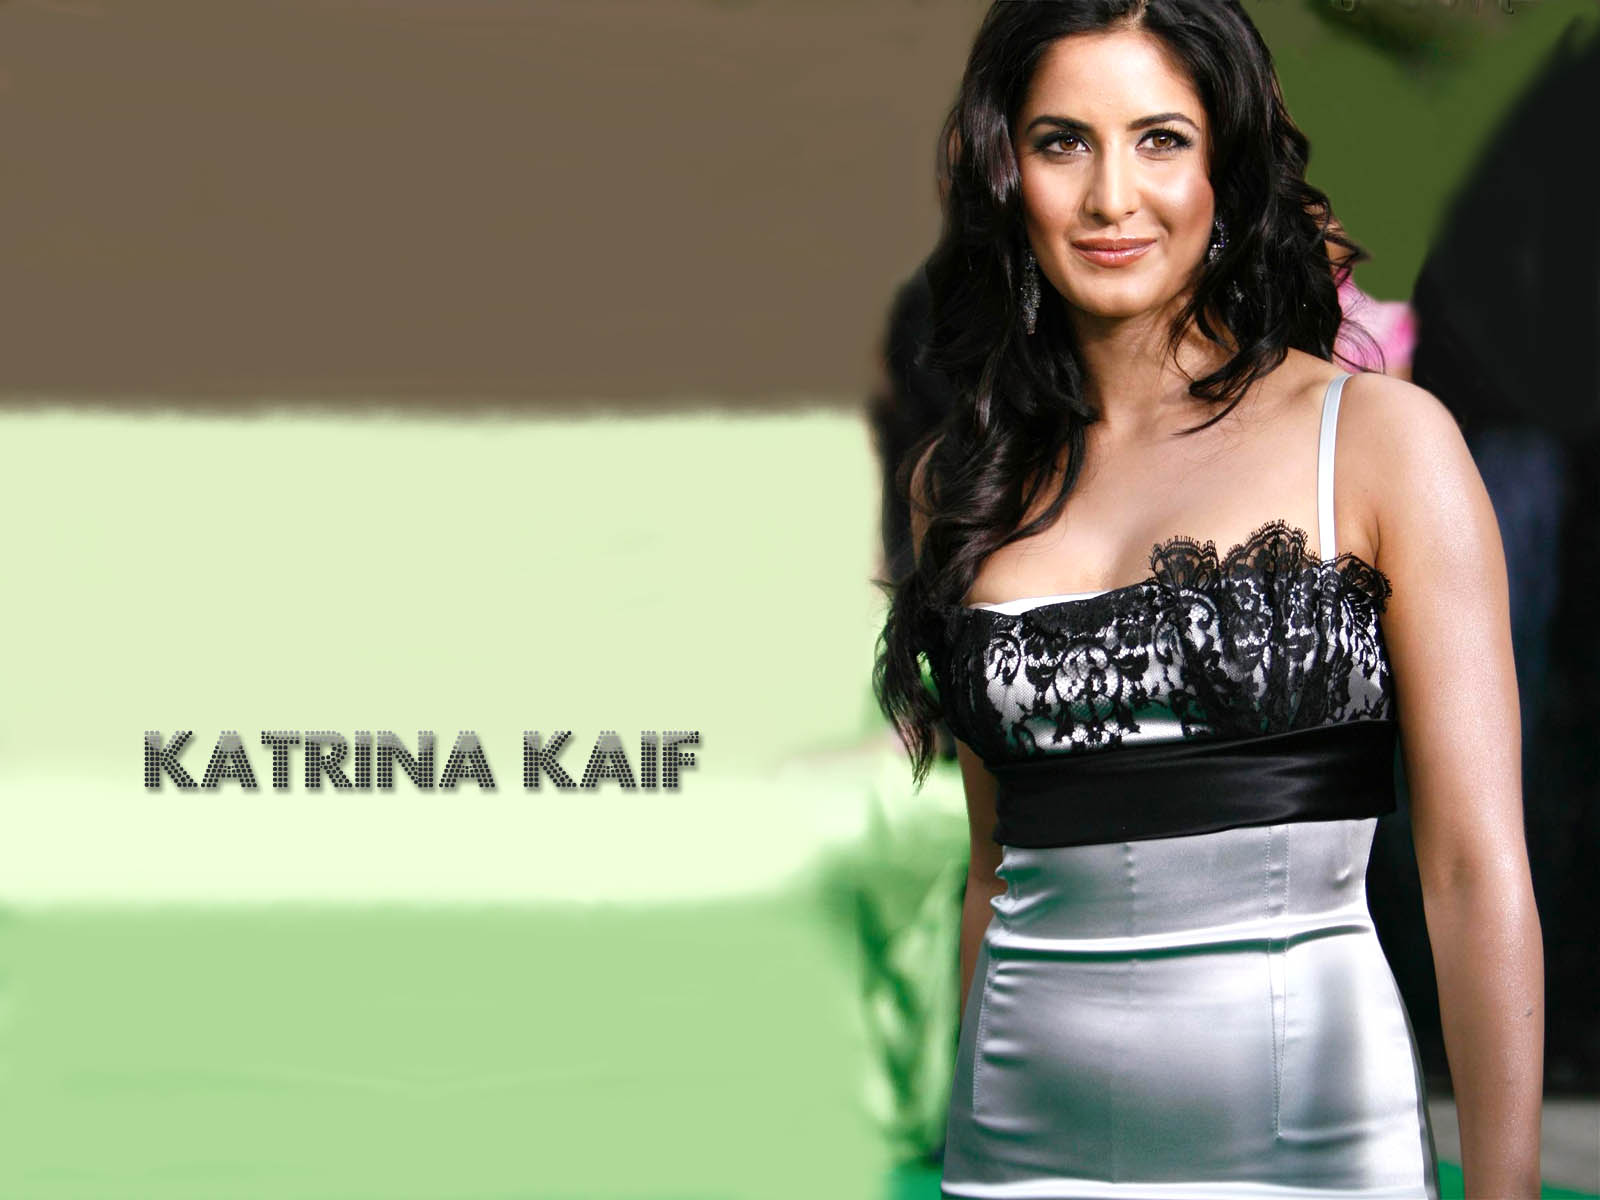 Katrina Kaif Sexy Video Free Download